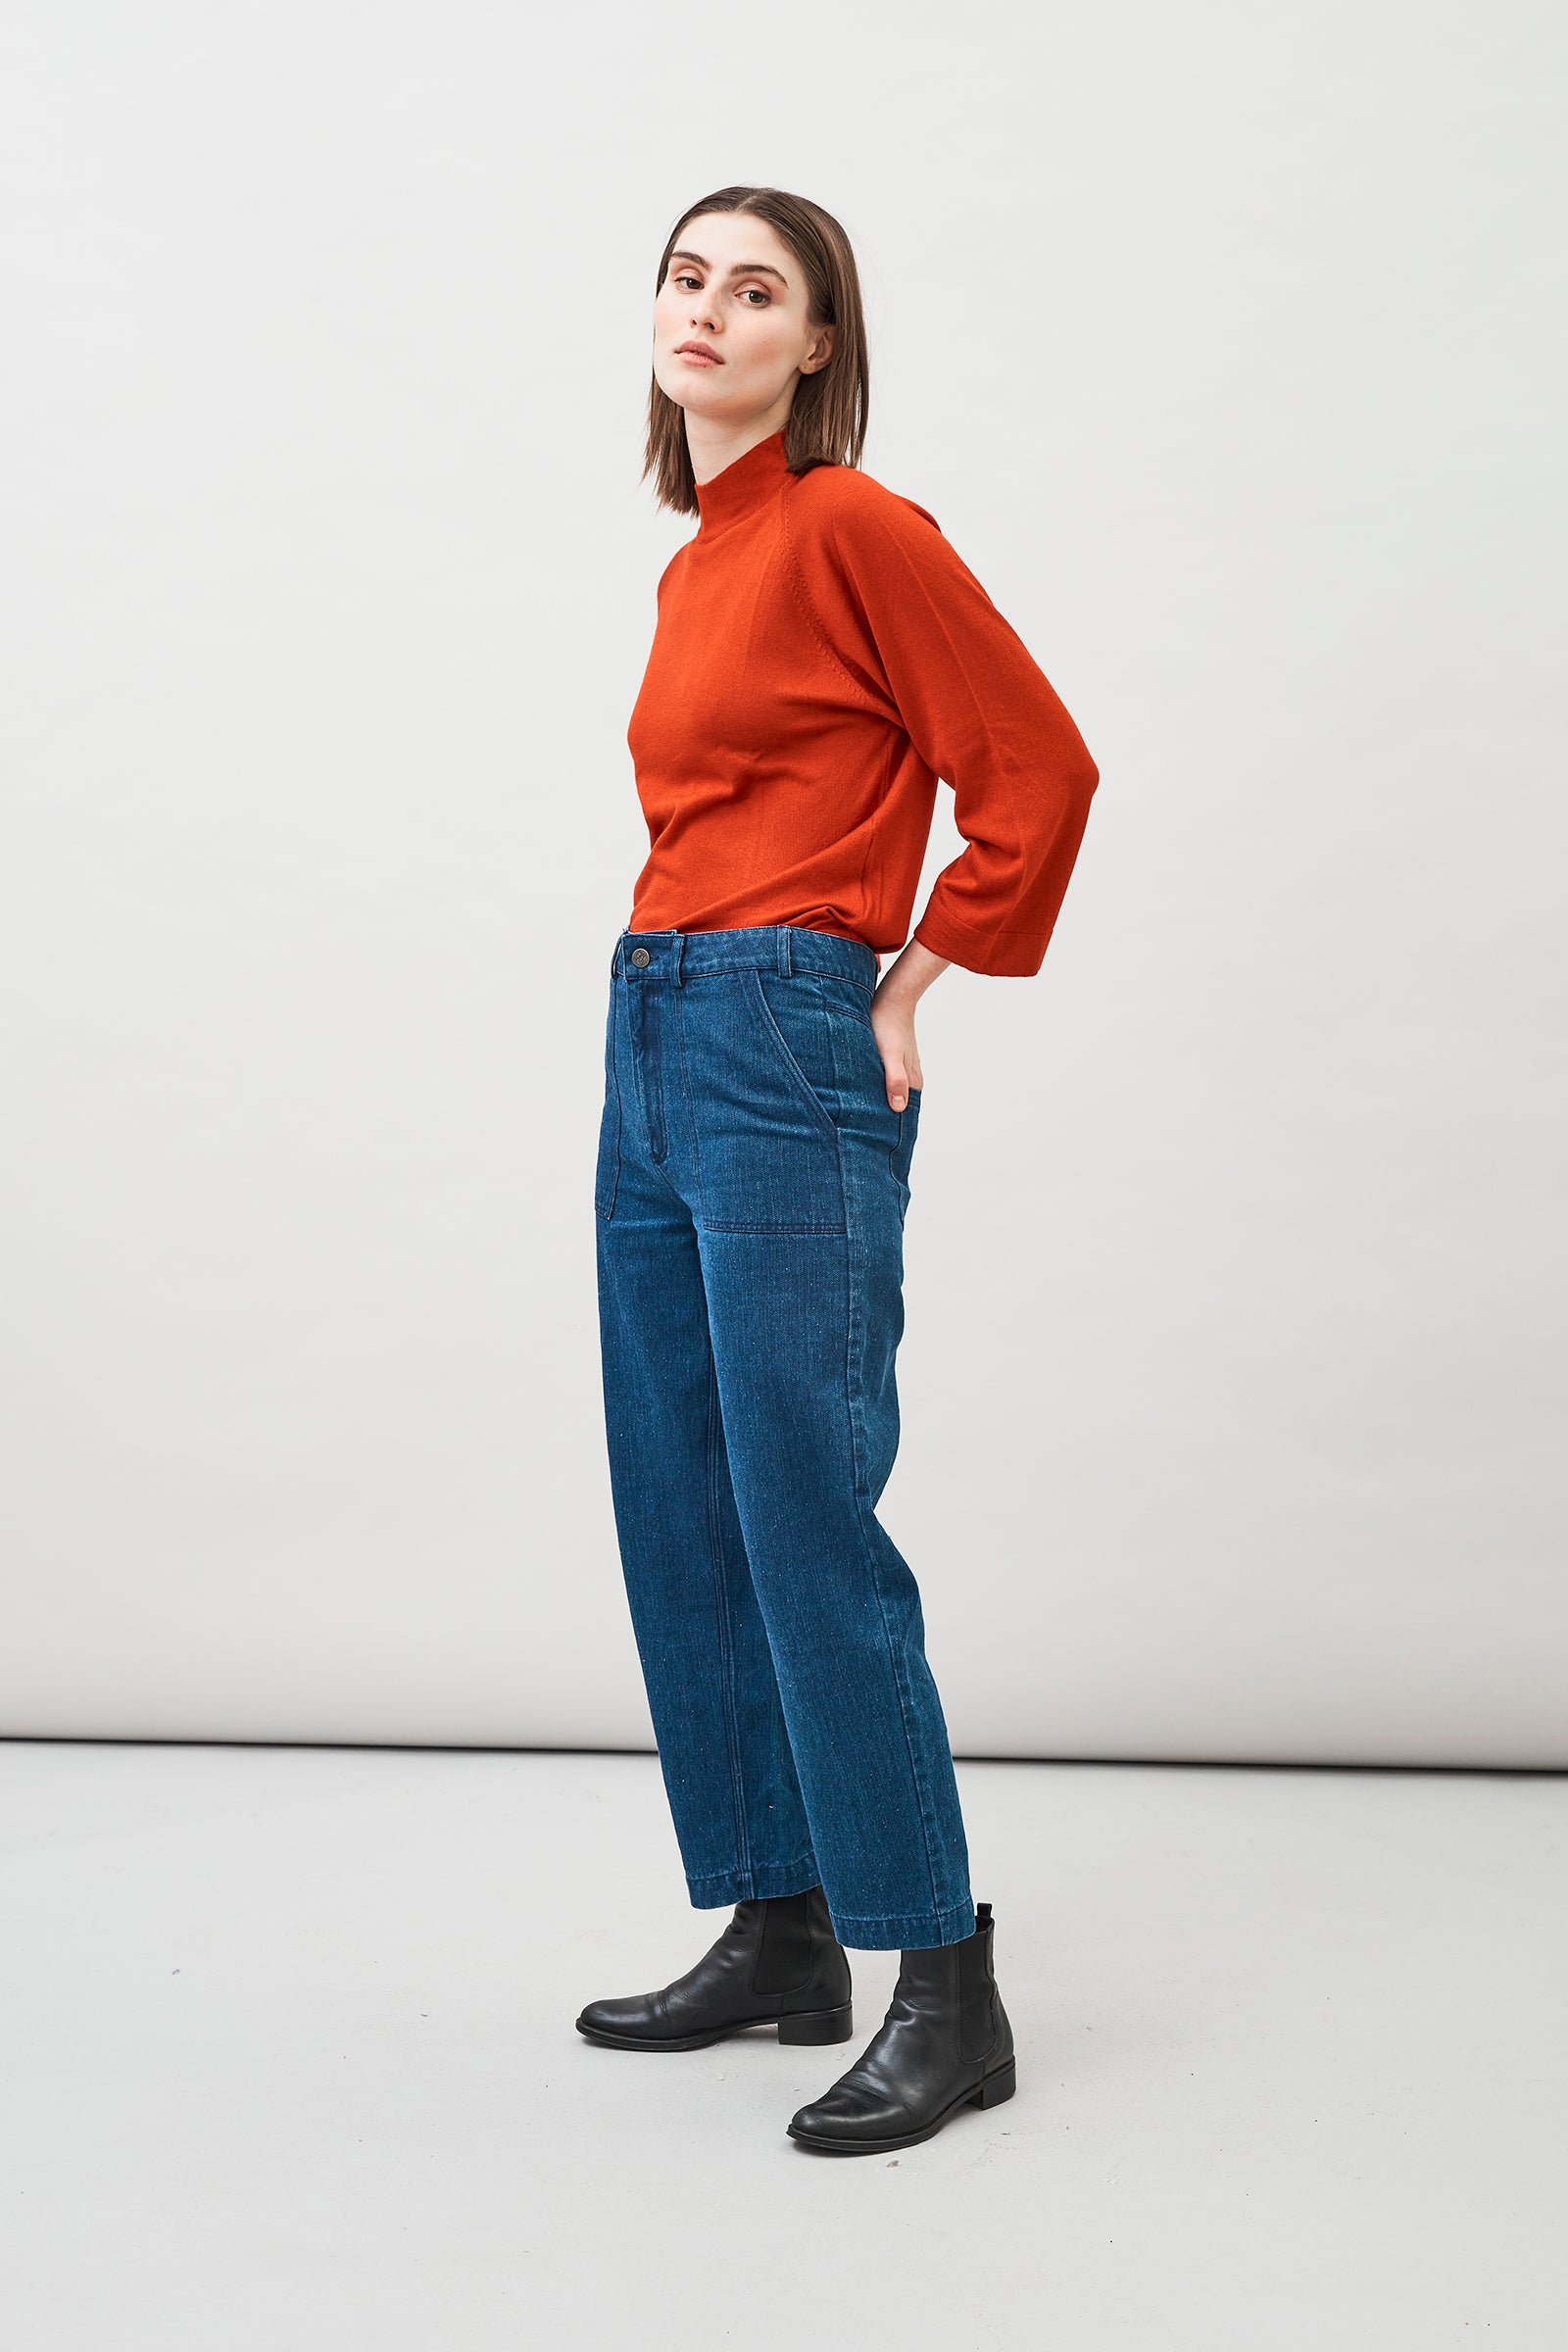 Rami Hemp Organic Cotton Barrel-Leg Jeans with a workwear style and classic back pockets